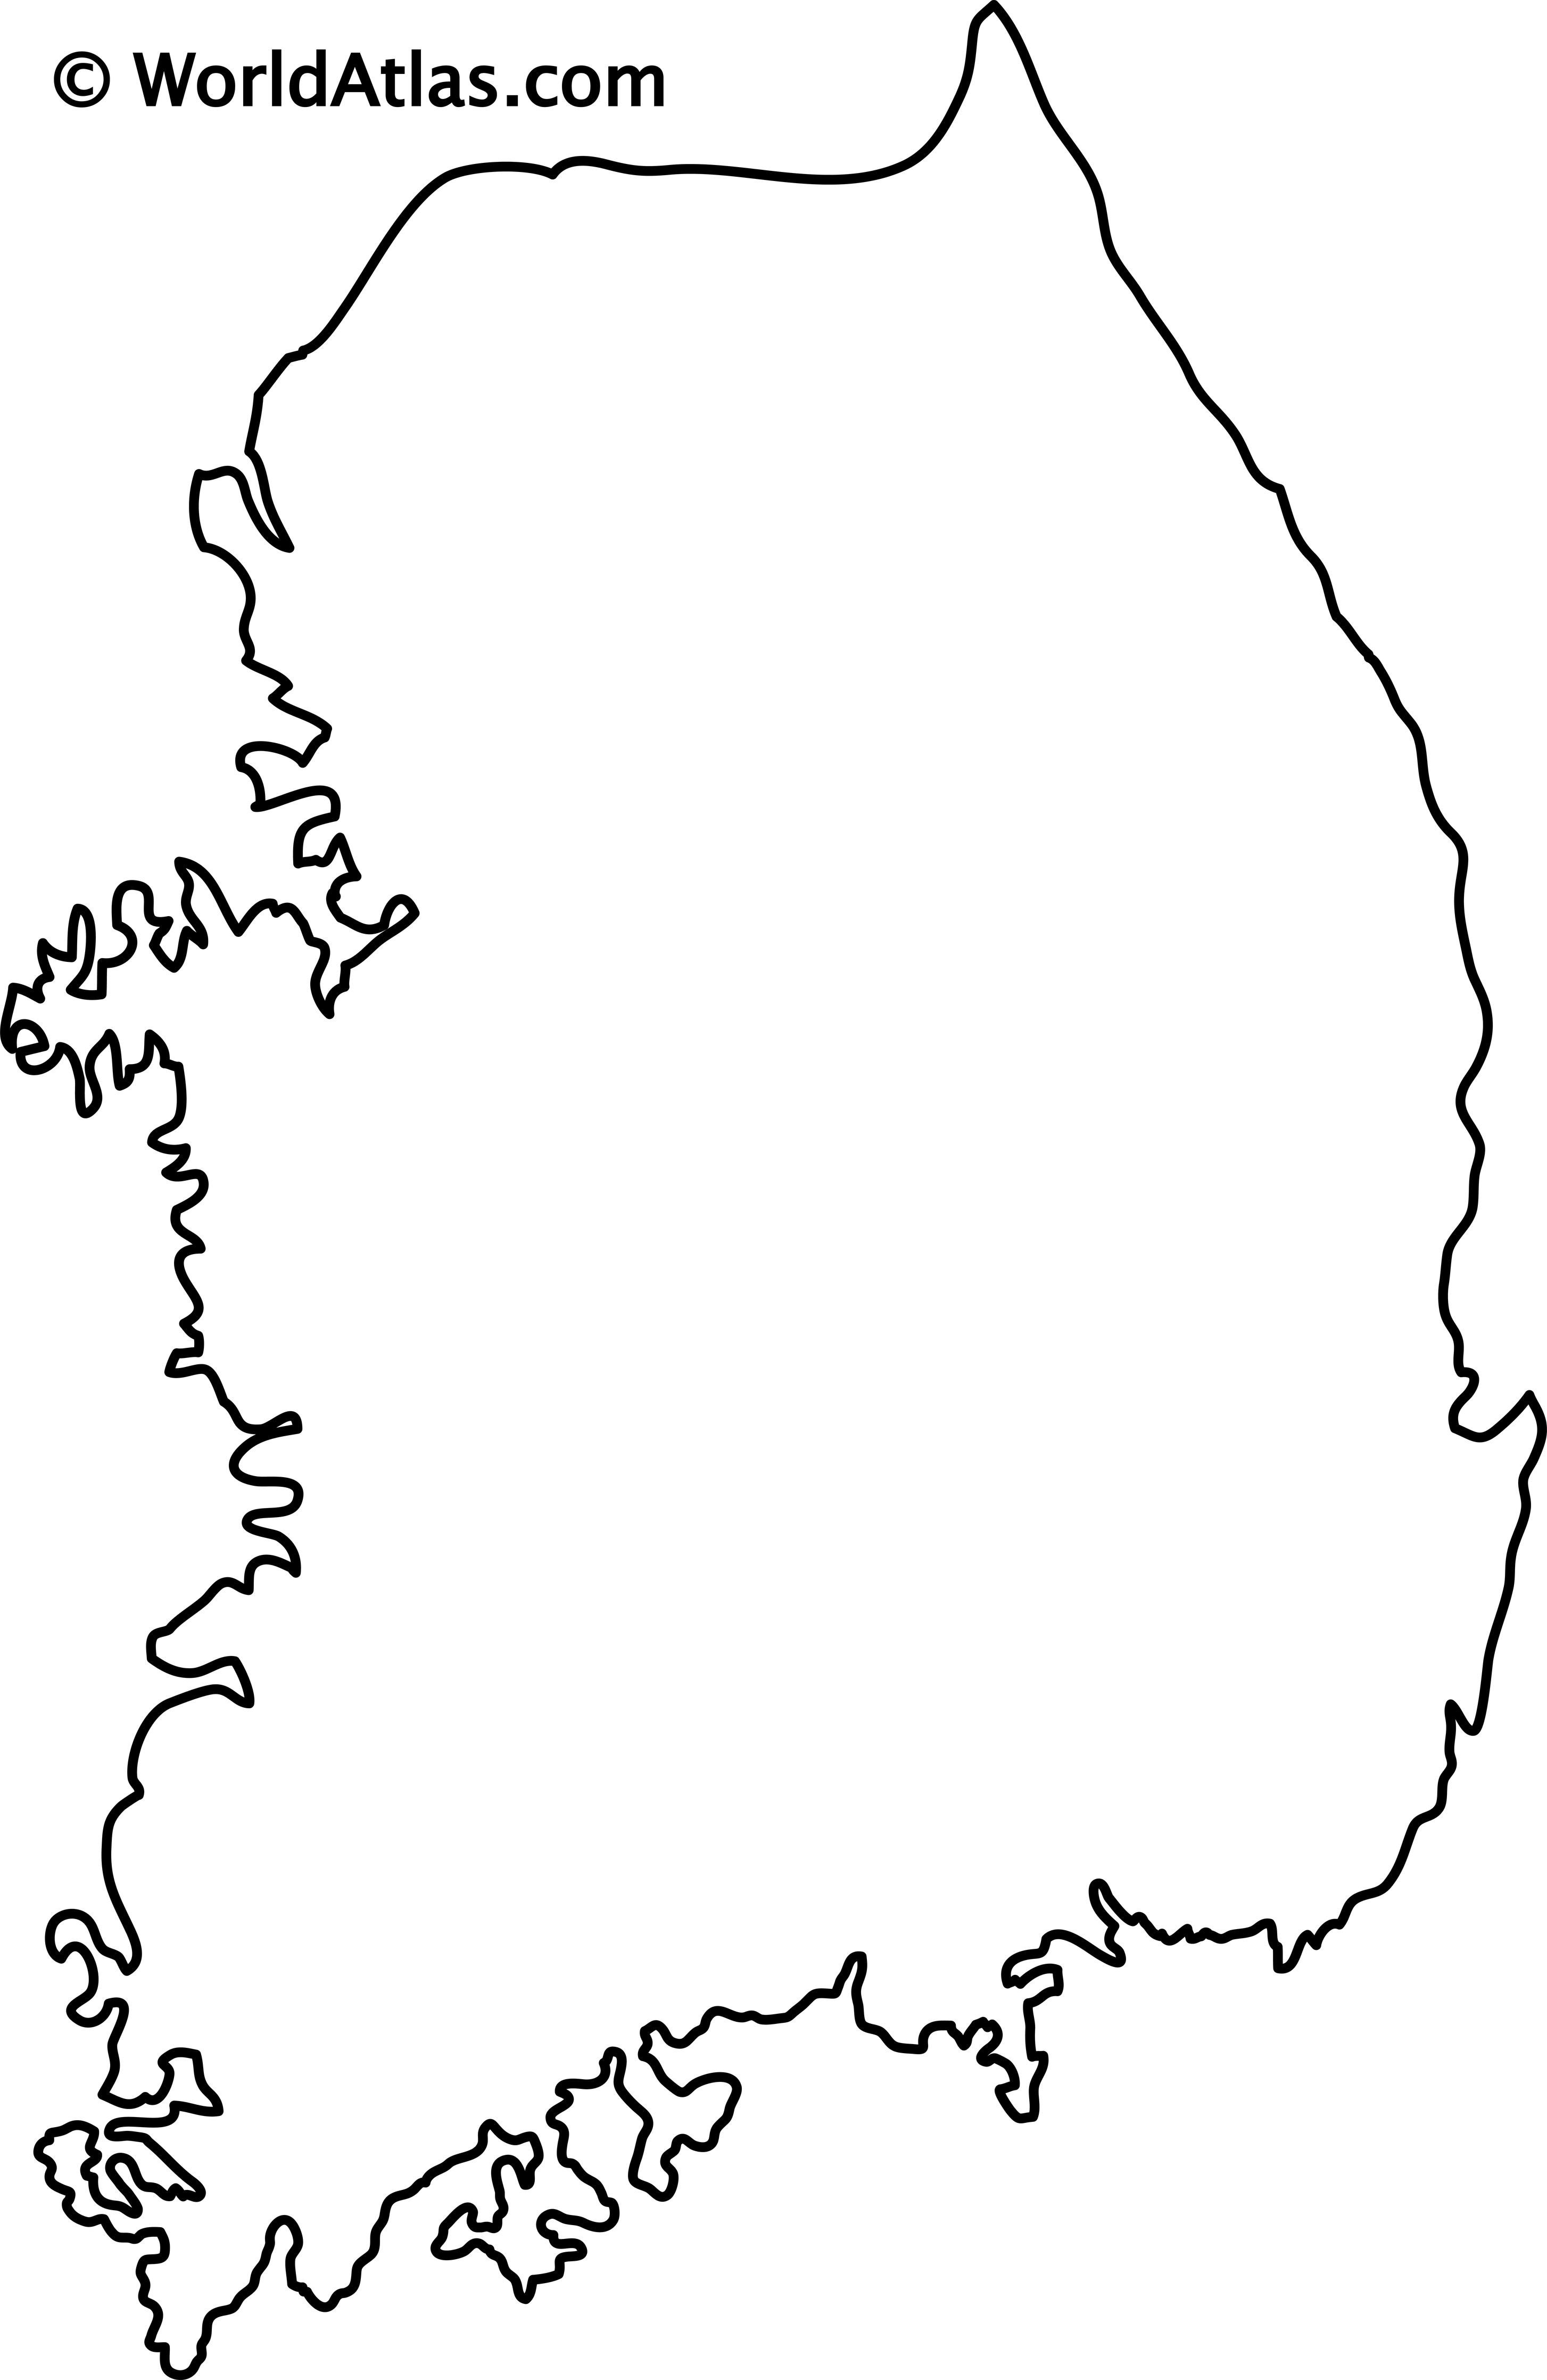 Blank Outline Map of South Korea